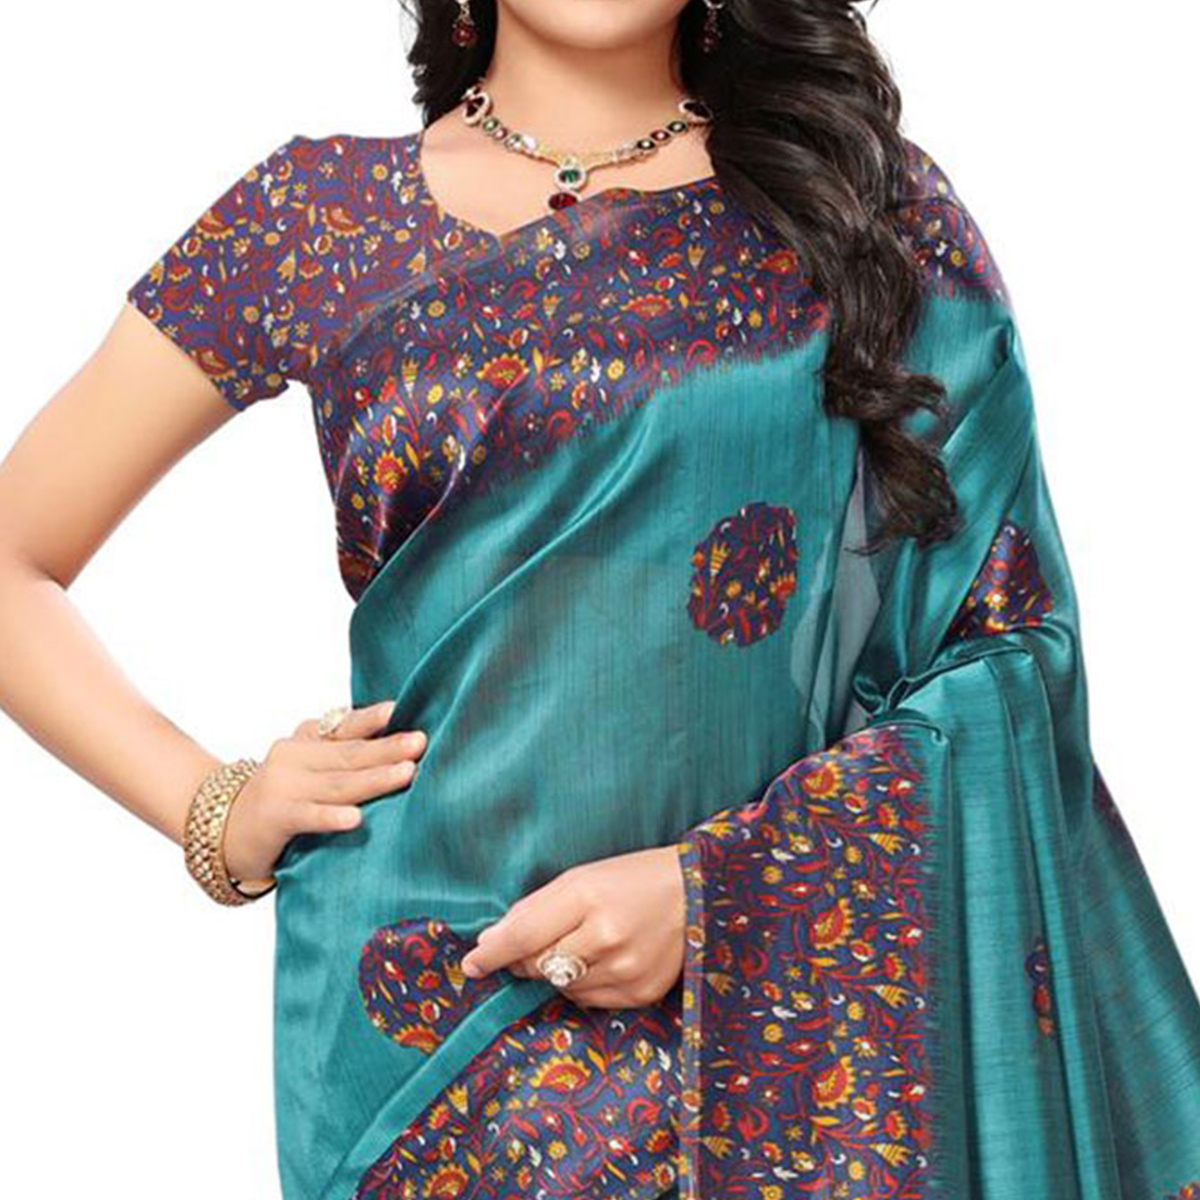 Marvelous Teal Blue Colored Festive Wear Printed Mysore Art Silk Saree